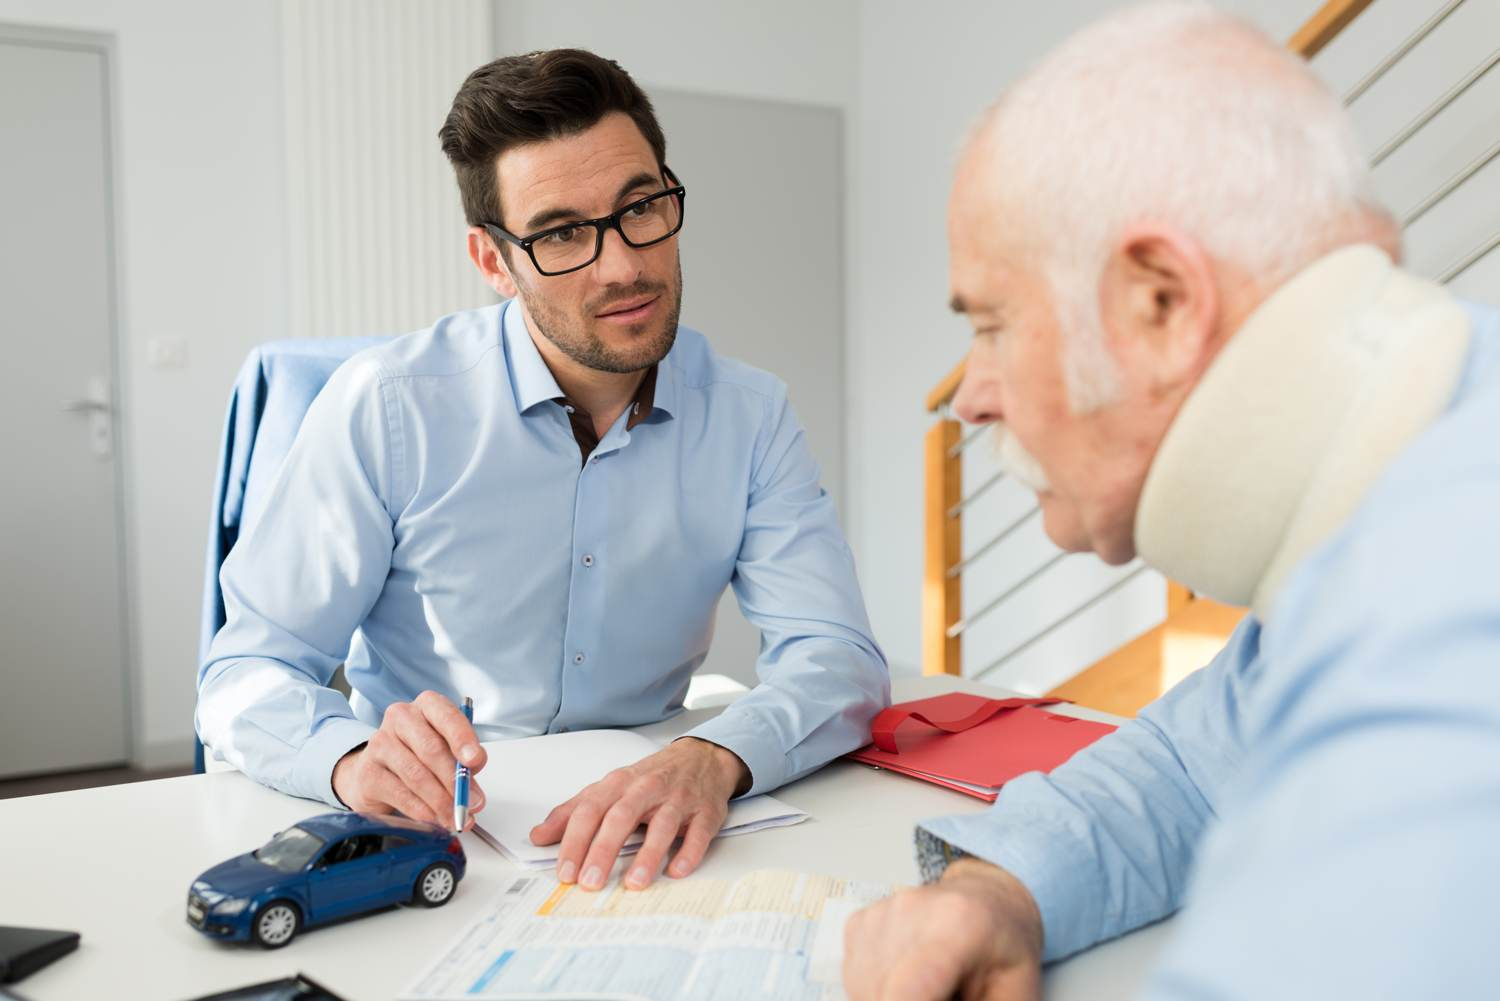 The Benefits of Going With a Personal Injury Attorney